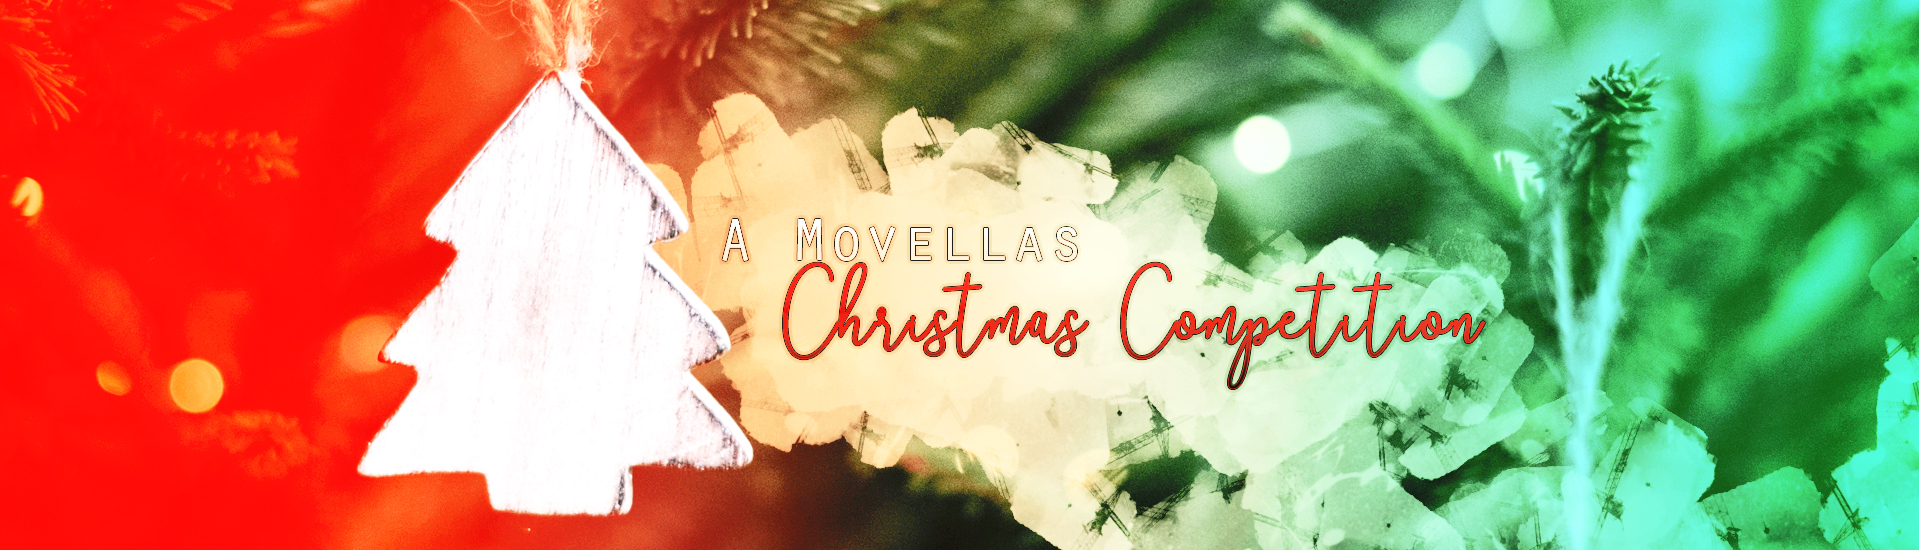 A Movellas Christmas Competition!